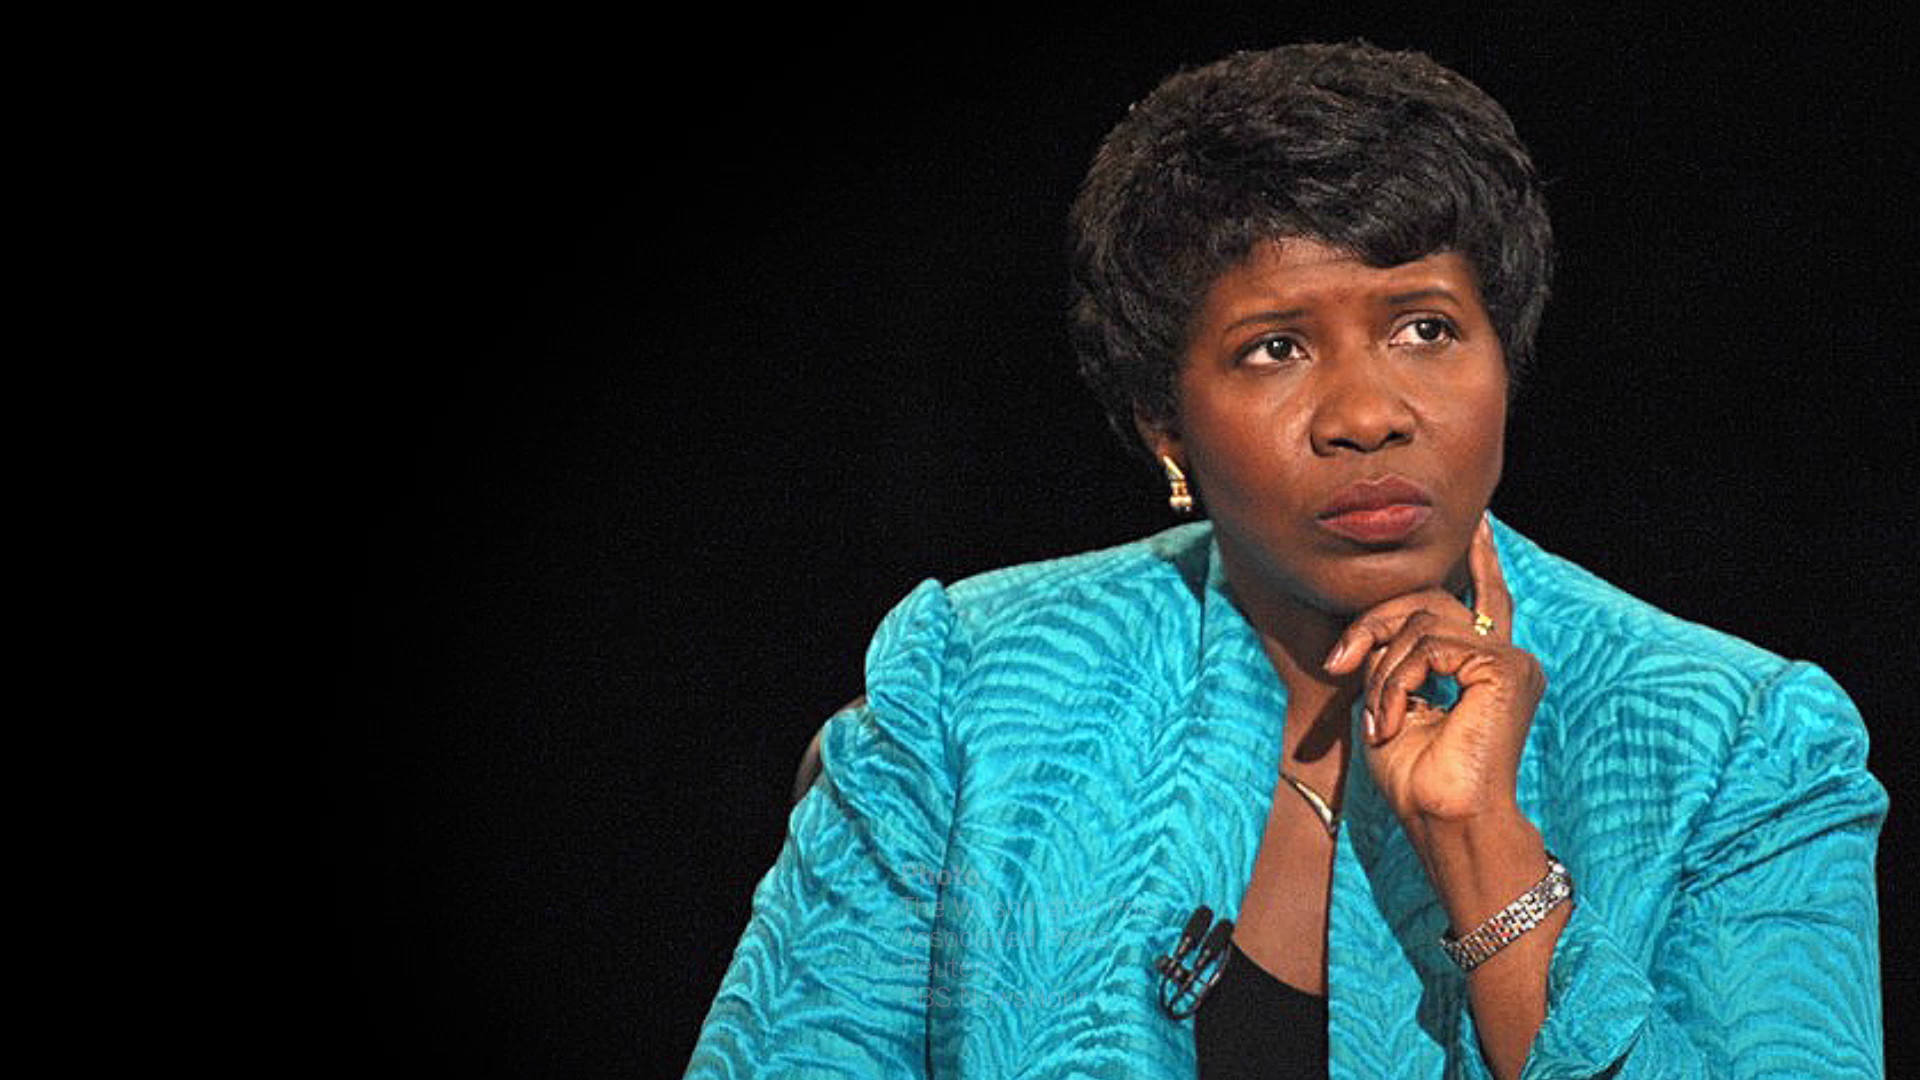 Gwen Ifill, who overcame barriers as a black female journalist, dies at 61